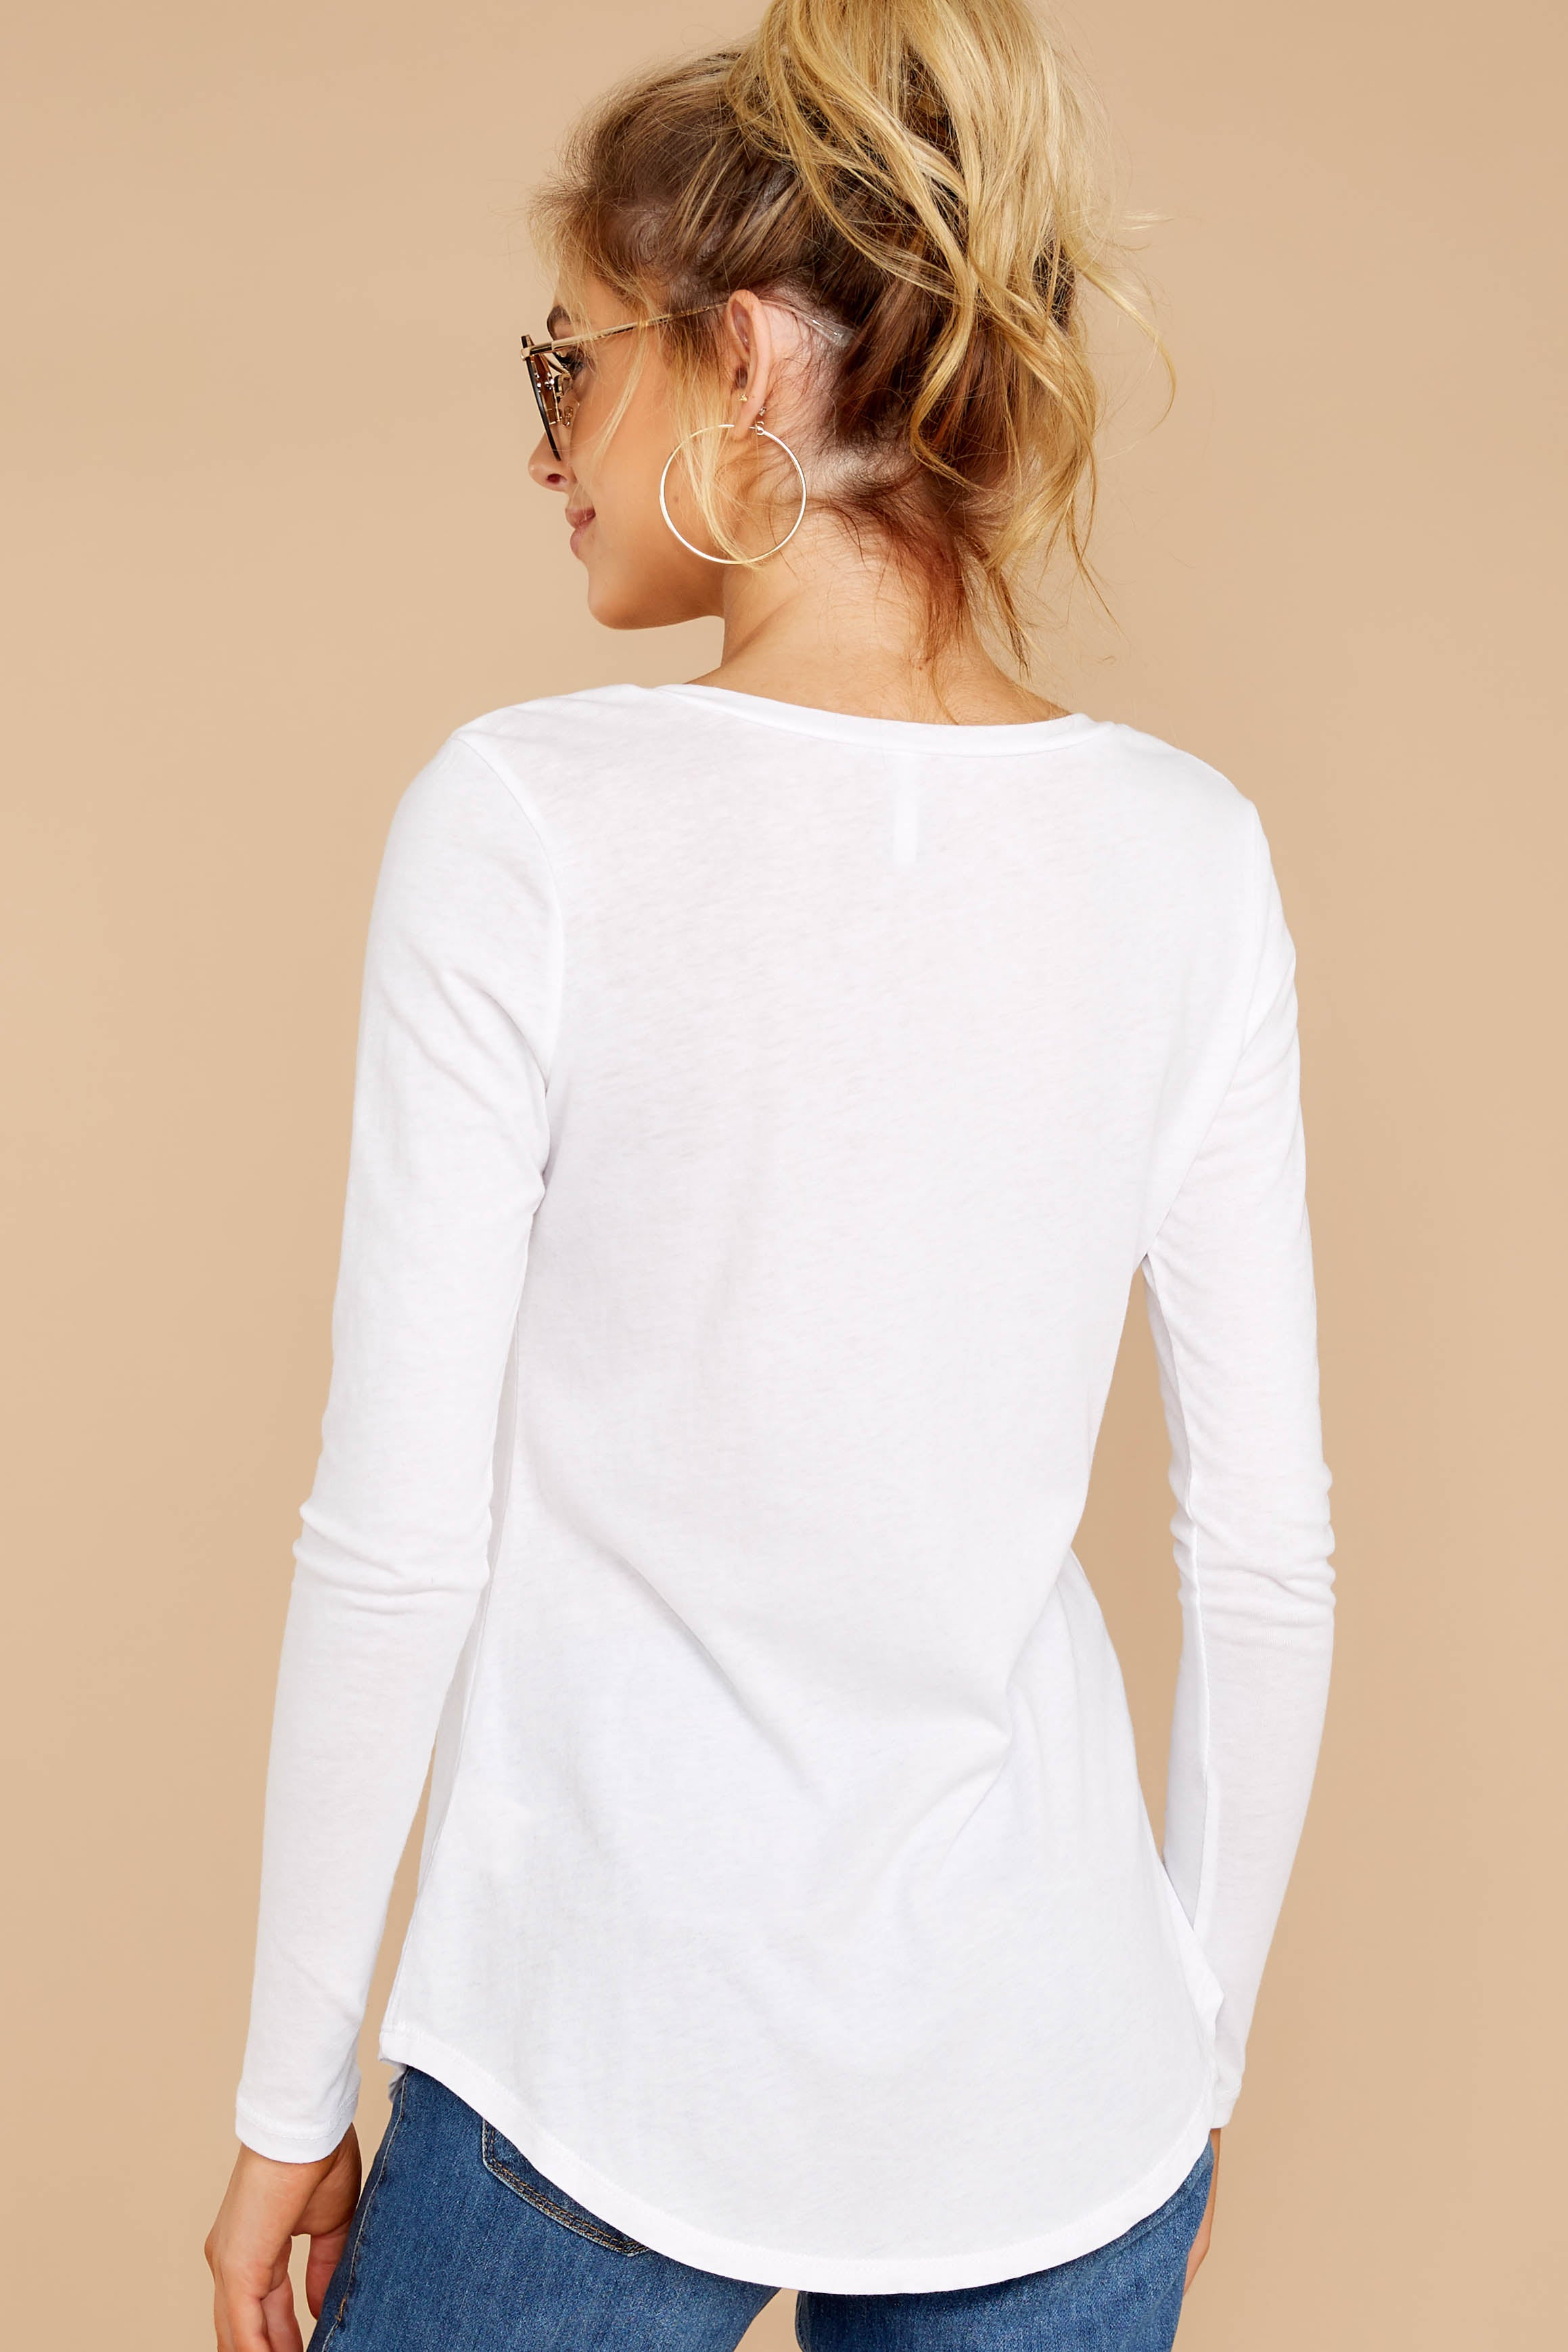 The White Long Sleeve Pocket Tee